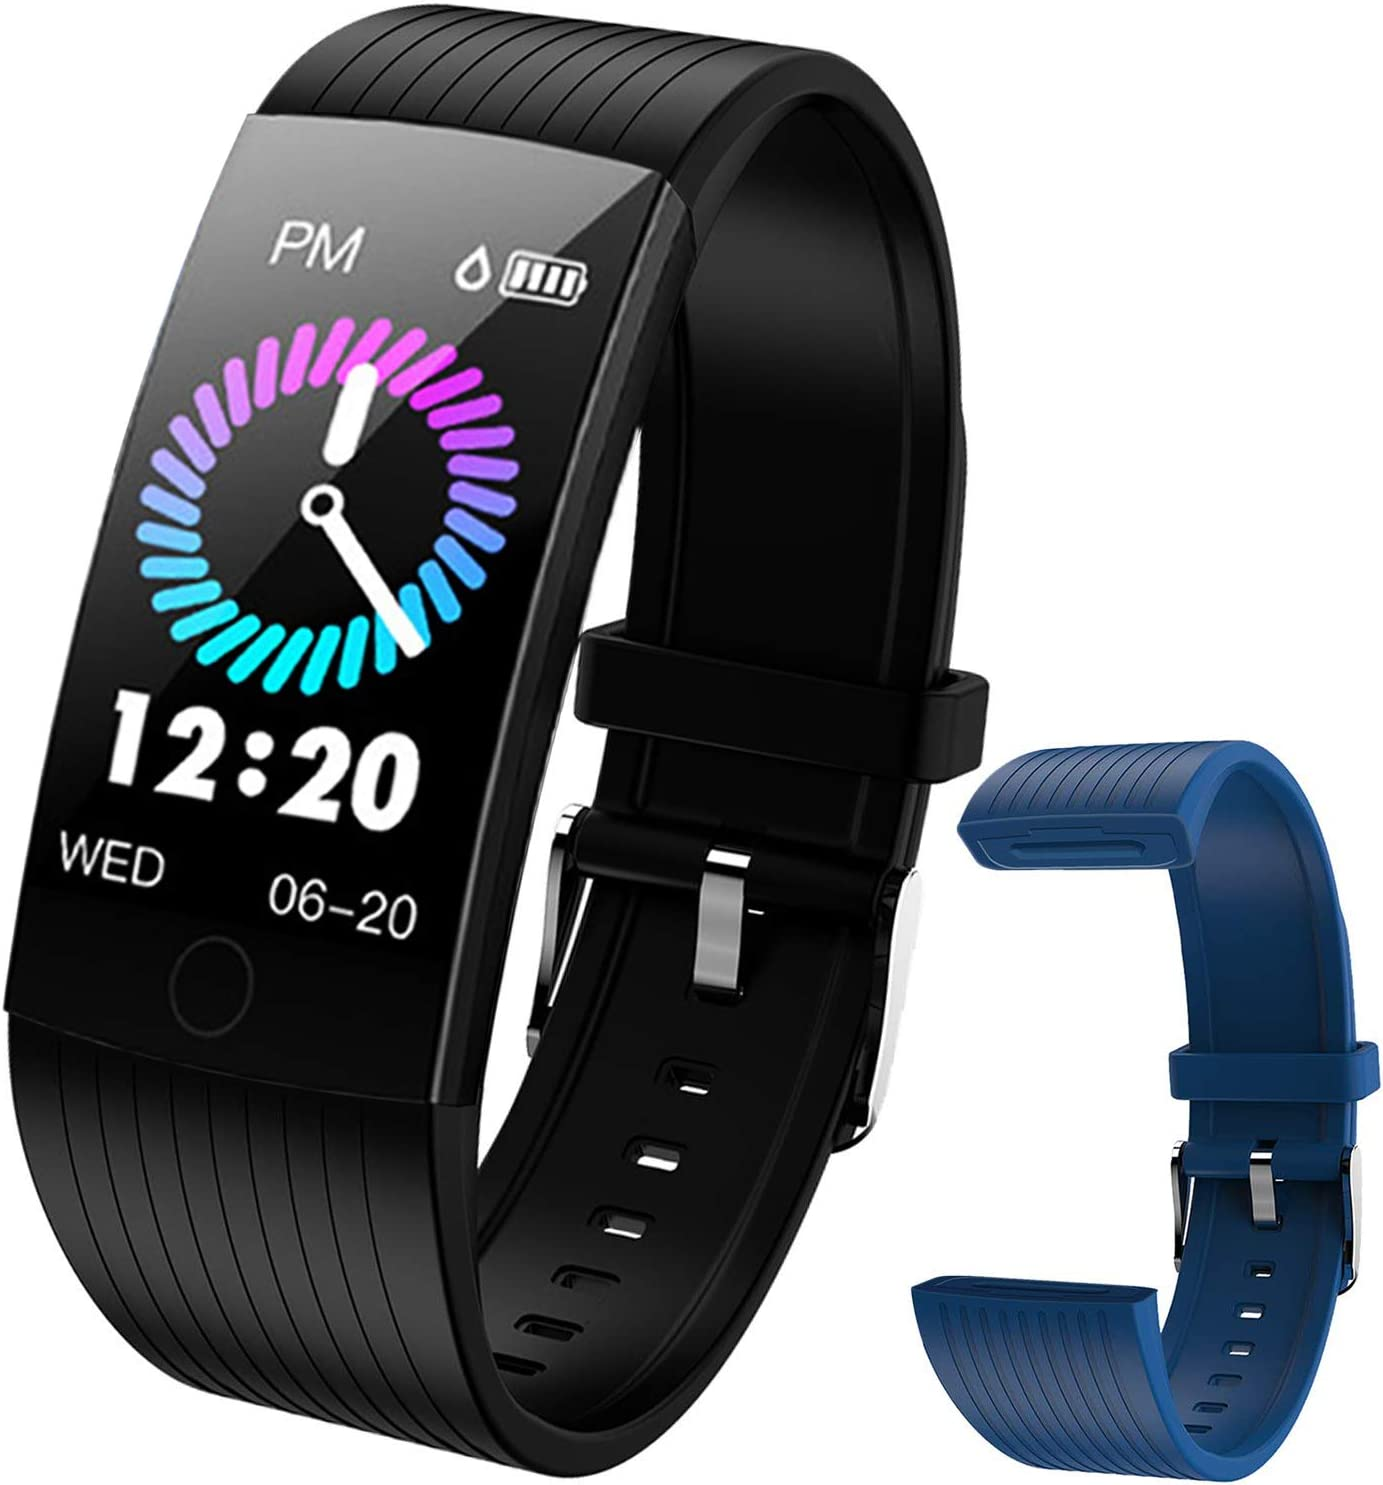 Buy Fitness Tracker With Heart Rate Monitor Fitness Watch For Kids Boys Girls Oxygen Monitor Calorie Counter Pedometers For Steps And Miles Activity Tracker With Step Counter For Walking Online In Indonesia